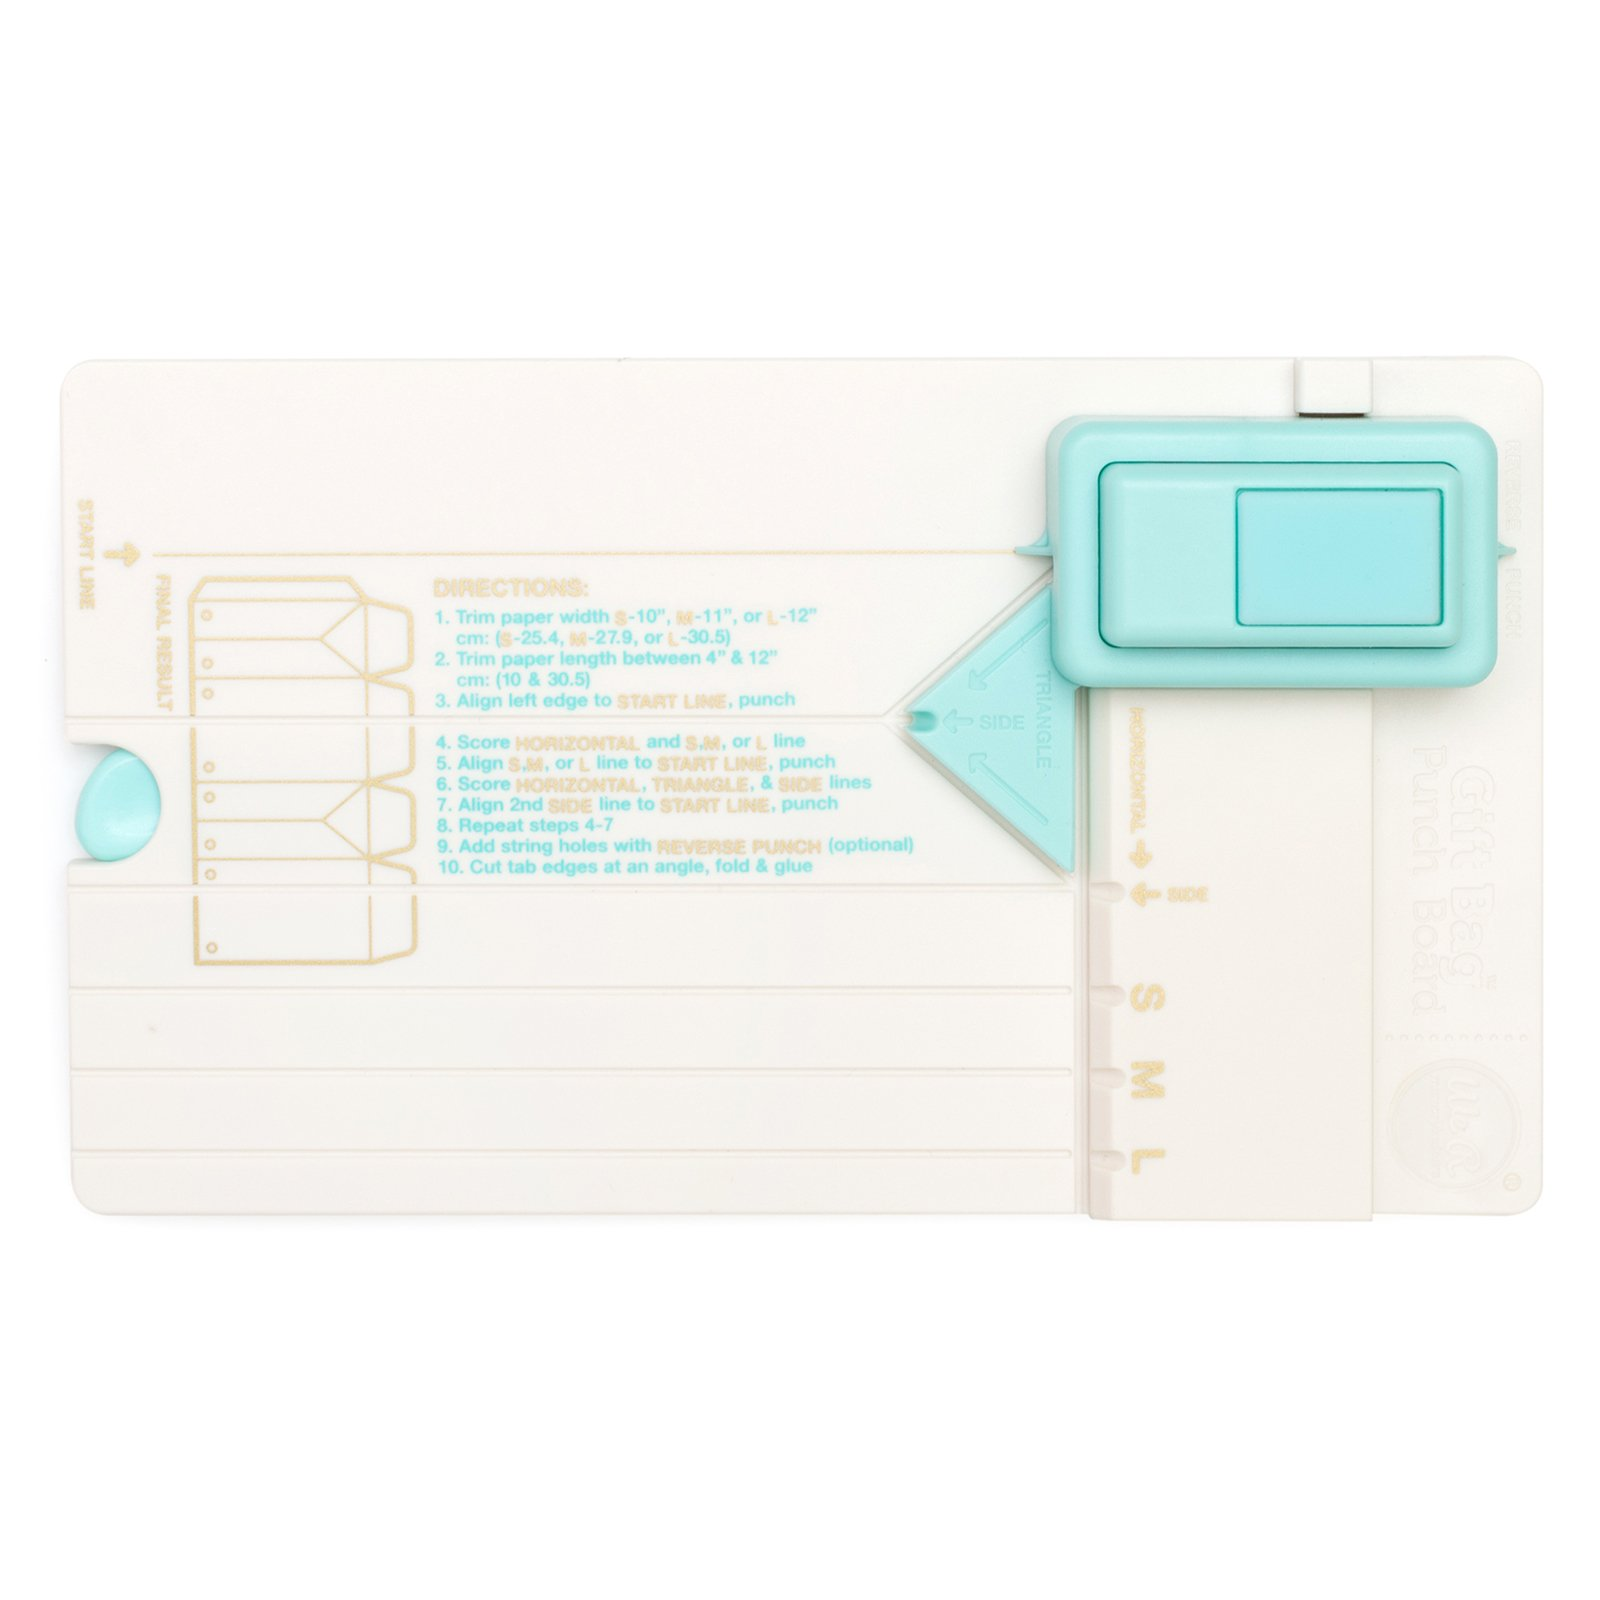 Gift Bag Punch Board by We R Memory Keepers | Includes punch board and detachable scoring tool, Multi color